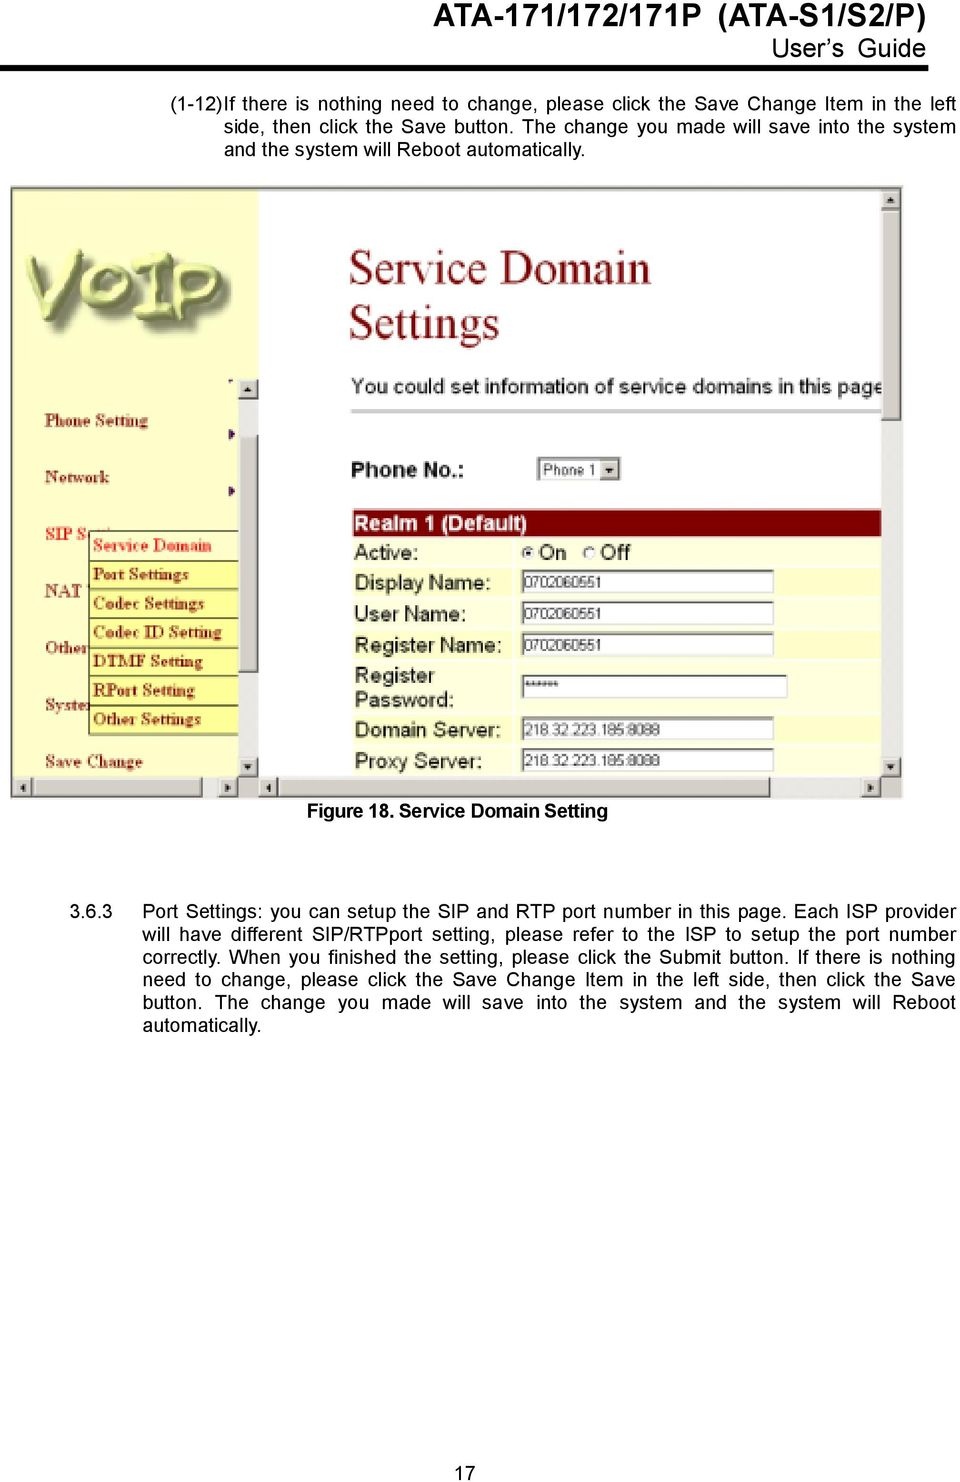 3 Port Settings: you can setup the SIP and RTP port number in this page.